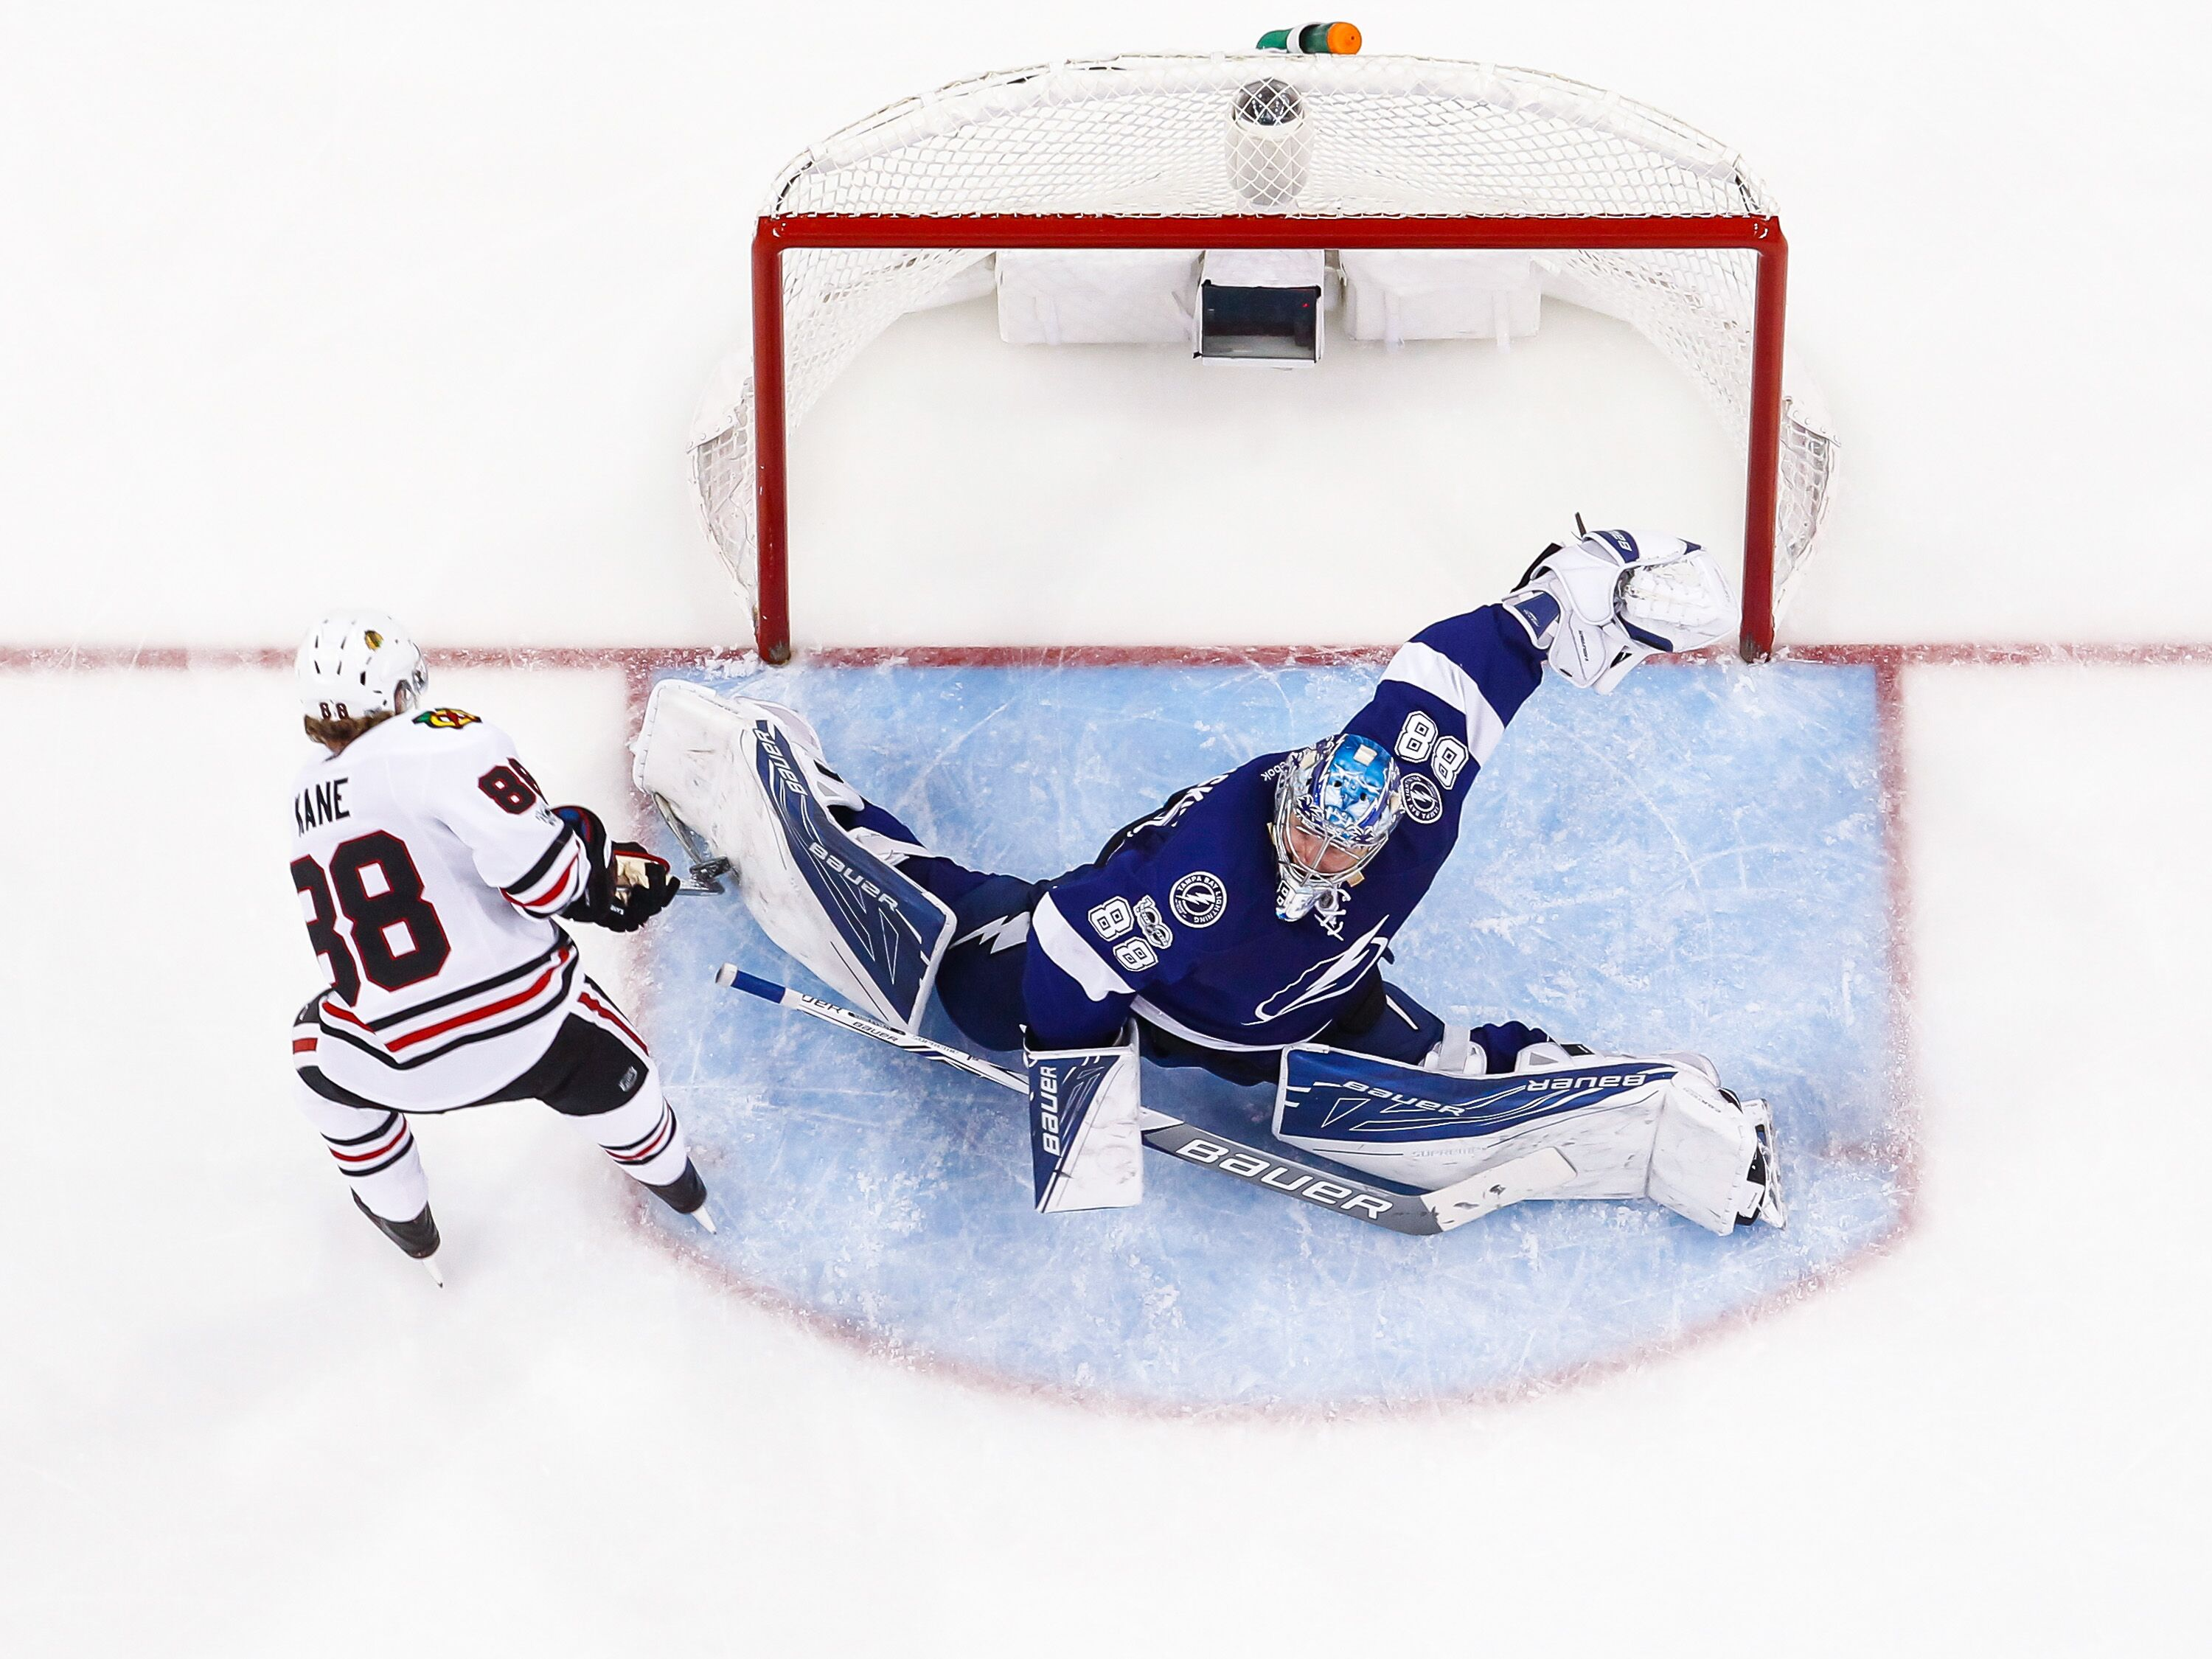 658566500-chicago-blackhawks-v-tampa-bay-lightning.jpg